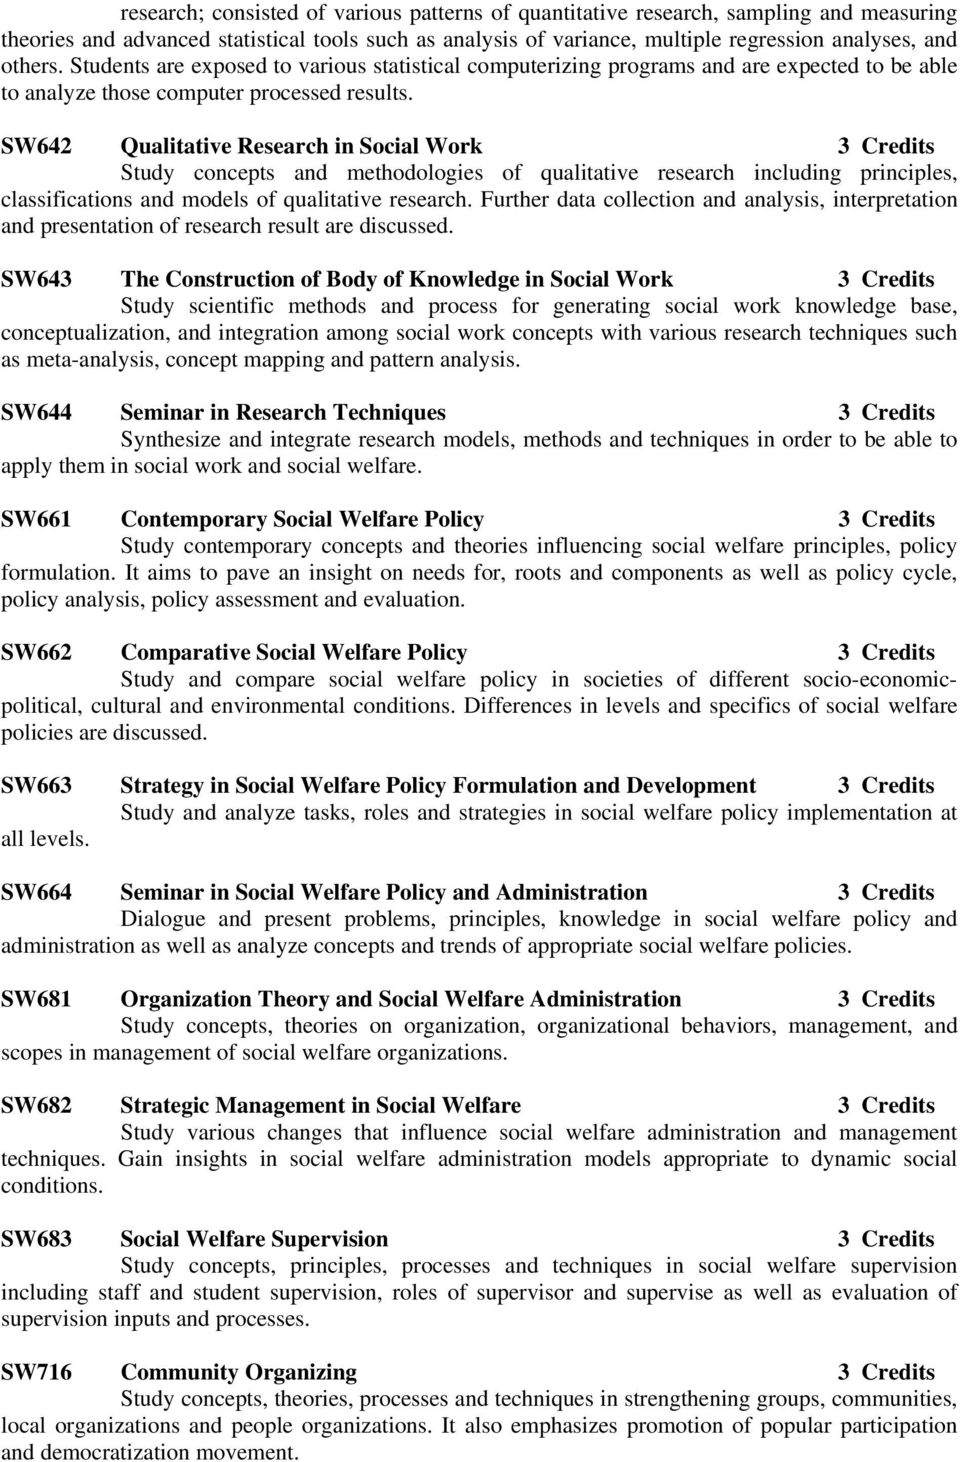 SW642 Qualitative Research in Social Work 3 Credits Study concepts and methodologies of qualitative research including principles, classifications and models of qualitative research.